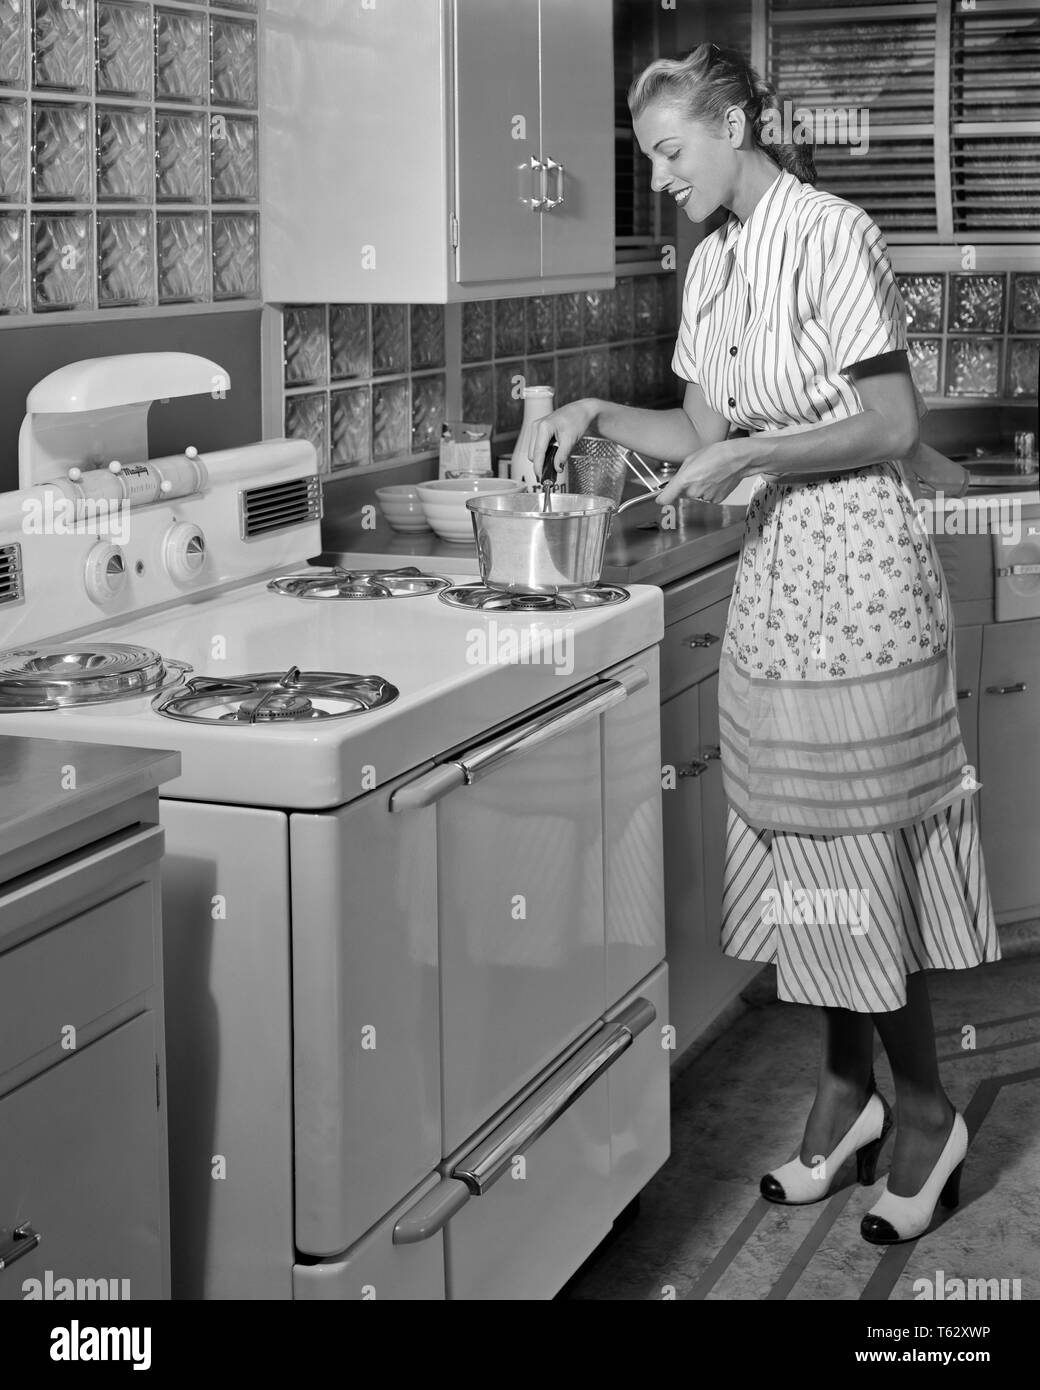 1950s SMILING BLOND HOUSEWIFE WEARING DRESS APRON TWO TONE HIGH HEEL SHOES COOKING ON MID-CENTURY MODERN ELECTRIC KITCHEN RANGE - kr001040 CAM001 HARS JOY LIFESTYLE SATISFACTION FEMALES HOME LIFE LUXURY COPY SPACE FULL-LENGTH LADIES PERSONS INSPIRATION B&W HOMEMAKER HAPPINESS HOMEMAKERS CHEERFUL HIGH HEEL CAM001 PRIDE ON HOUSEWIVES SMILES CONCEPTUAL JOYFUL RANGE STYLISH ALUMINUM GLASS BLOCK TWO TONE YOUNG ADULT WOMAN BLACK AND WHITE CAUCASIAN ETHNICITY OLD FASHIONED - Stock Image